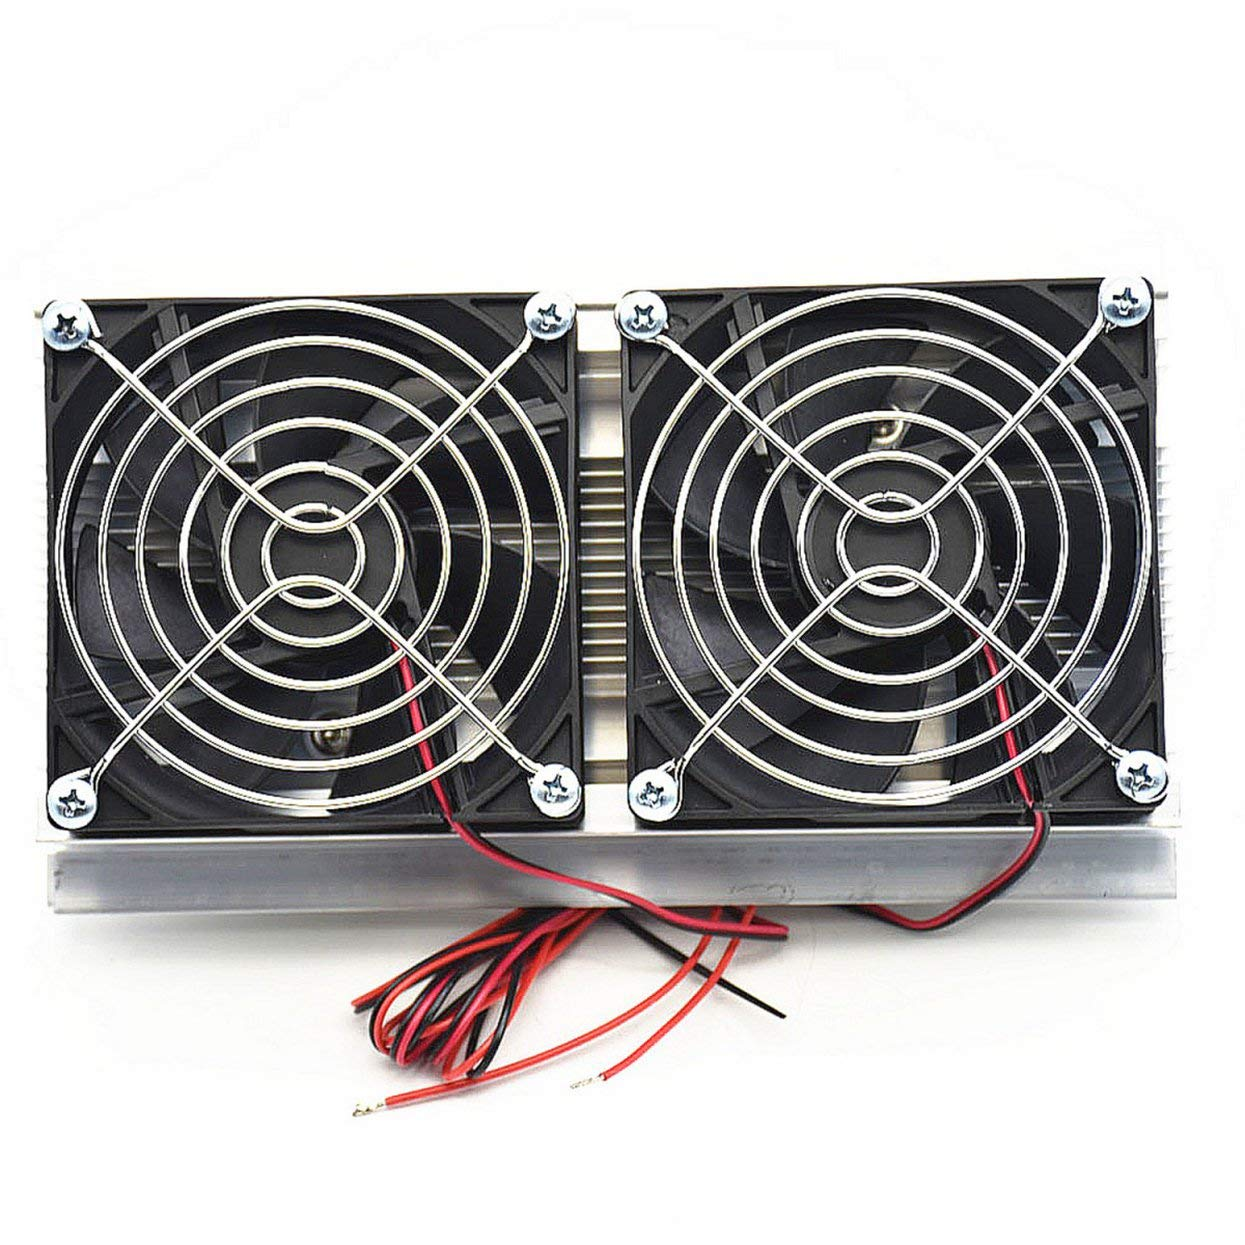 Lamijua Thermoelectric Peltier Refrigeration Cooling System Kit Semiconductor Cooler Large Radiator Cold Conduction Module Double Fans